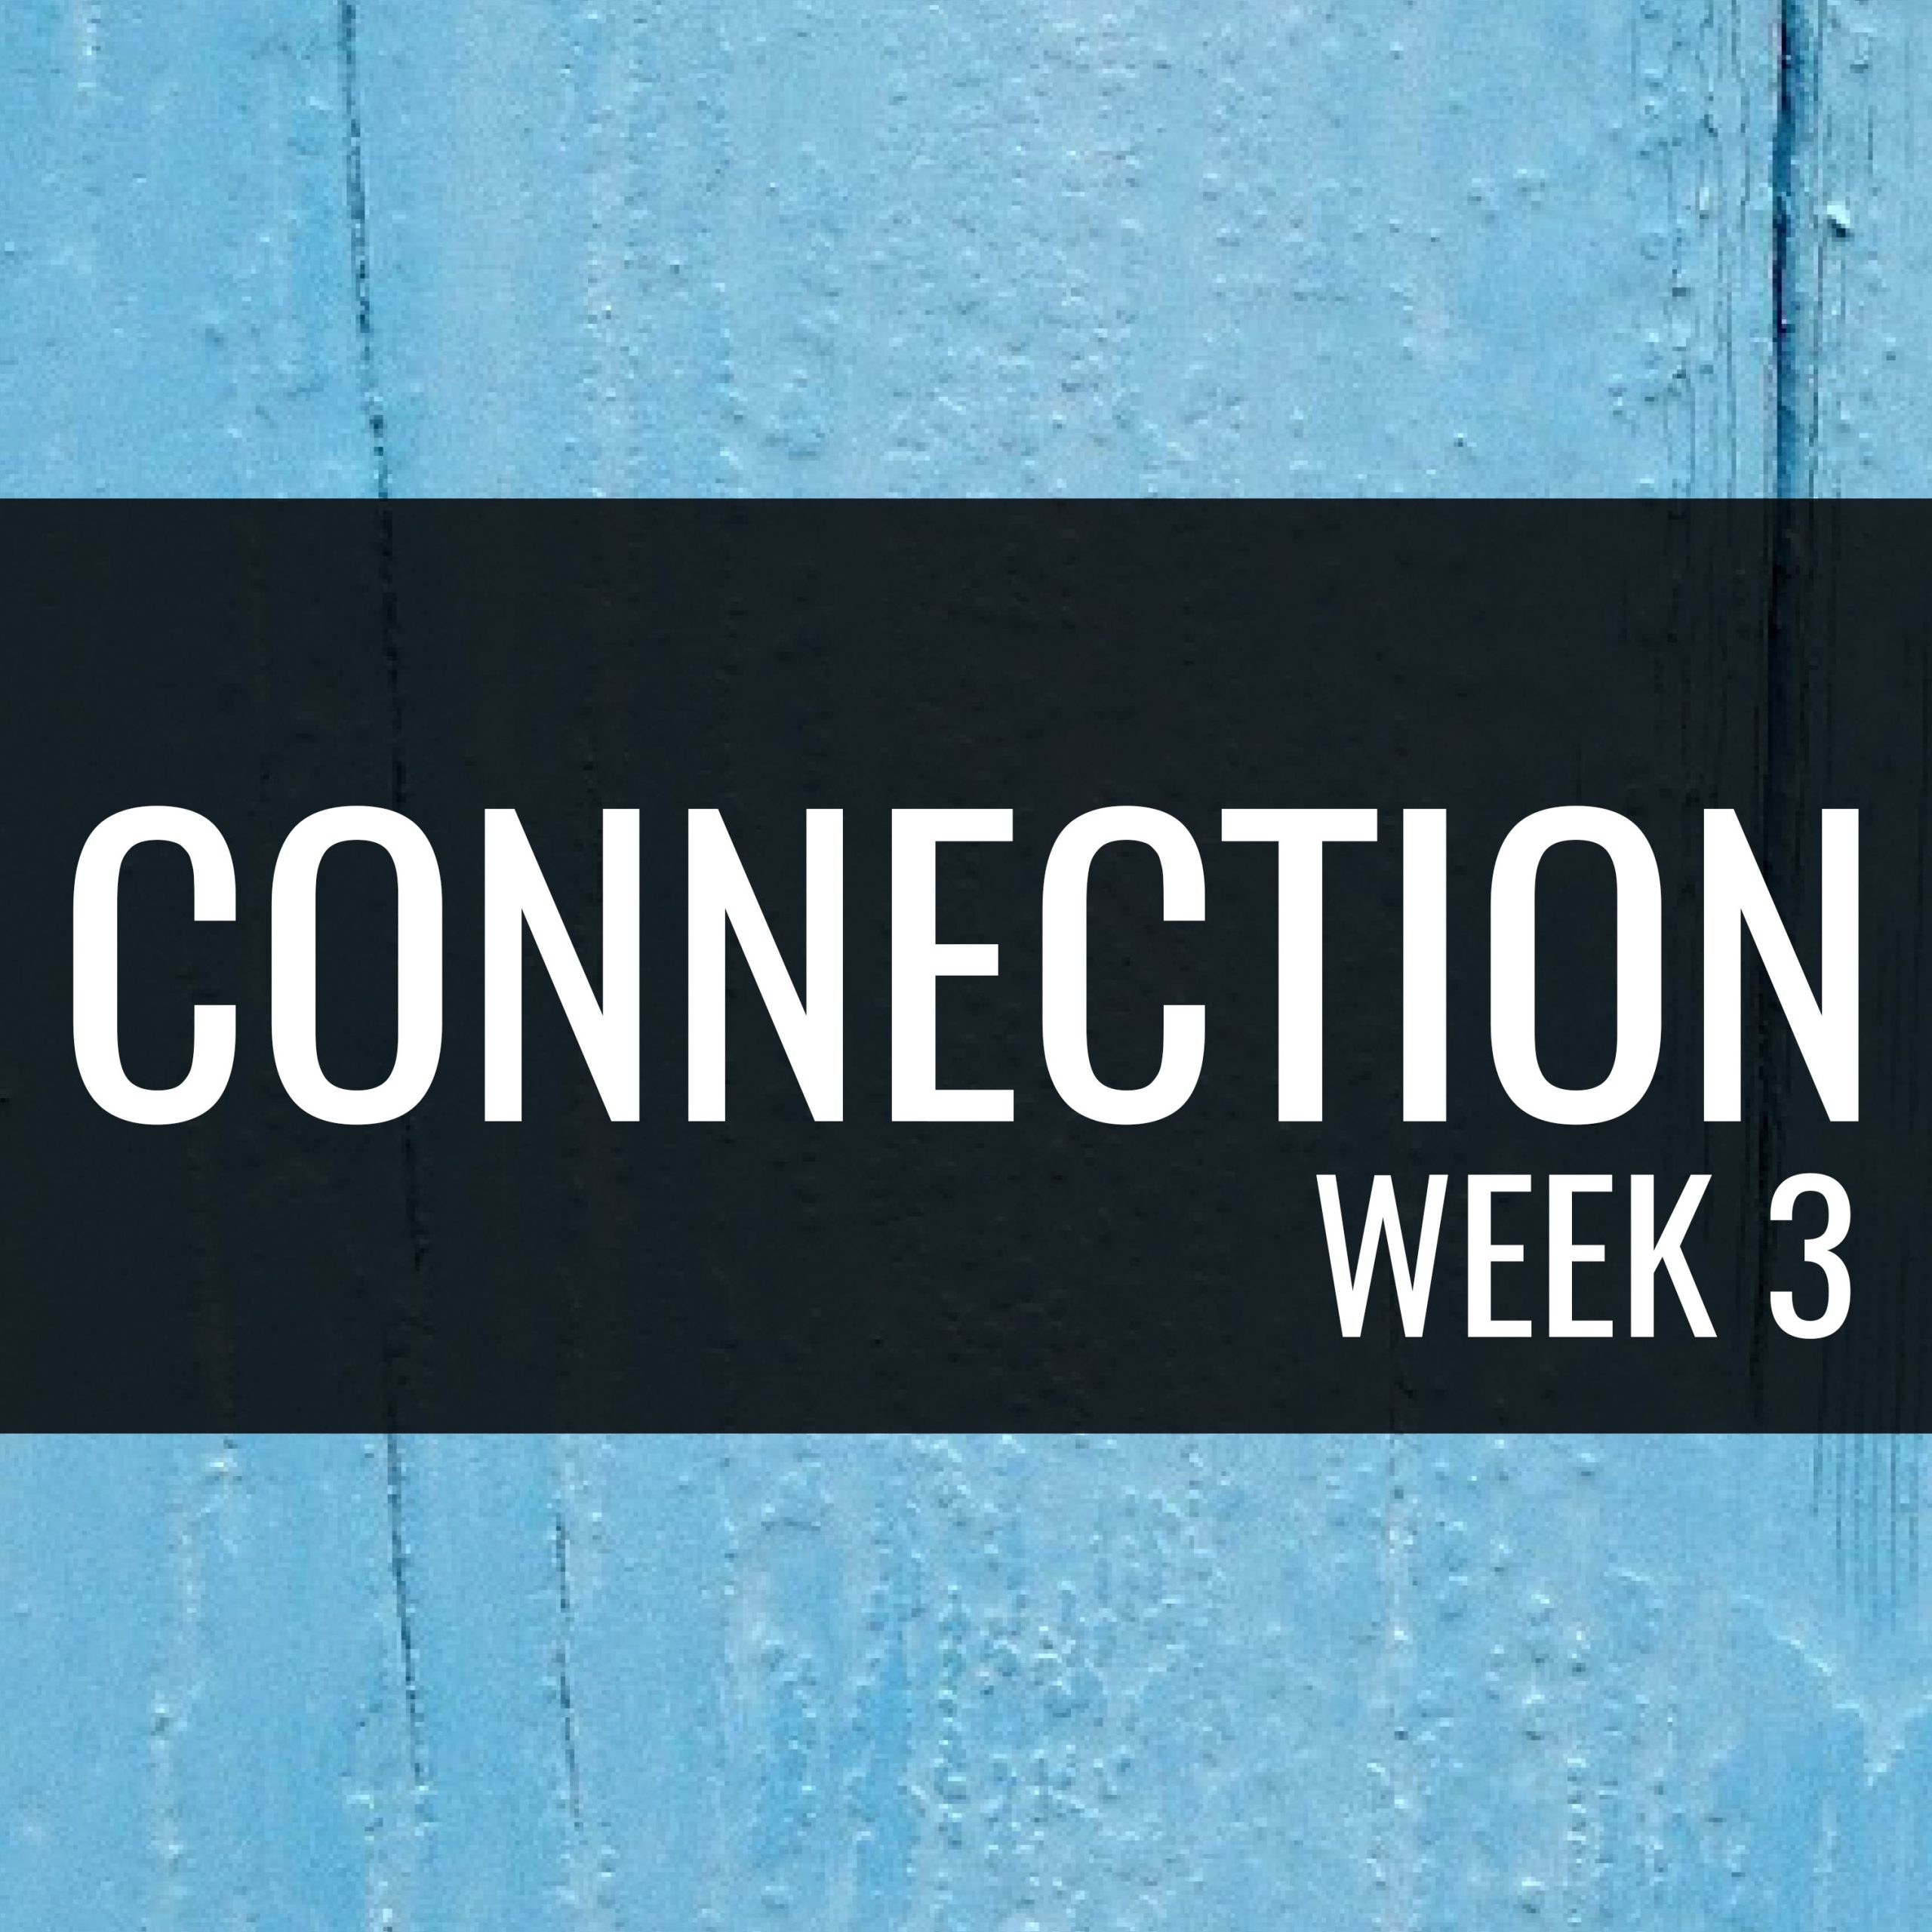 Connection: Week 3